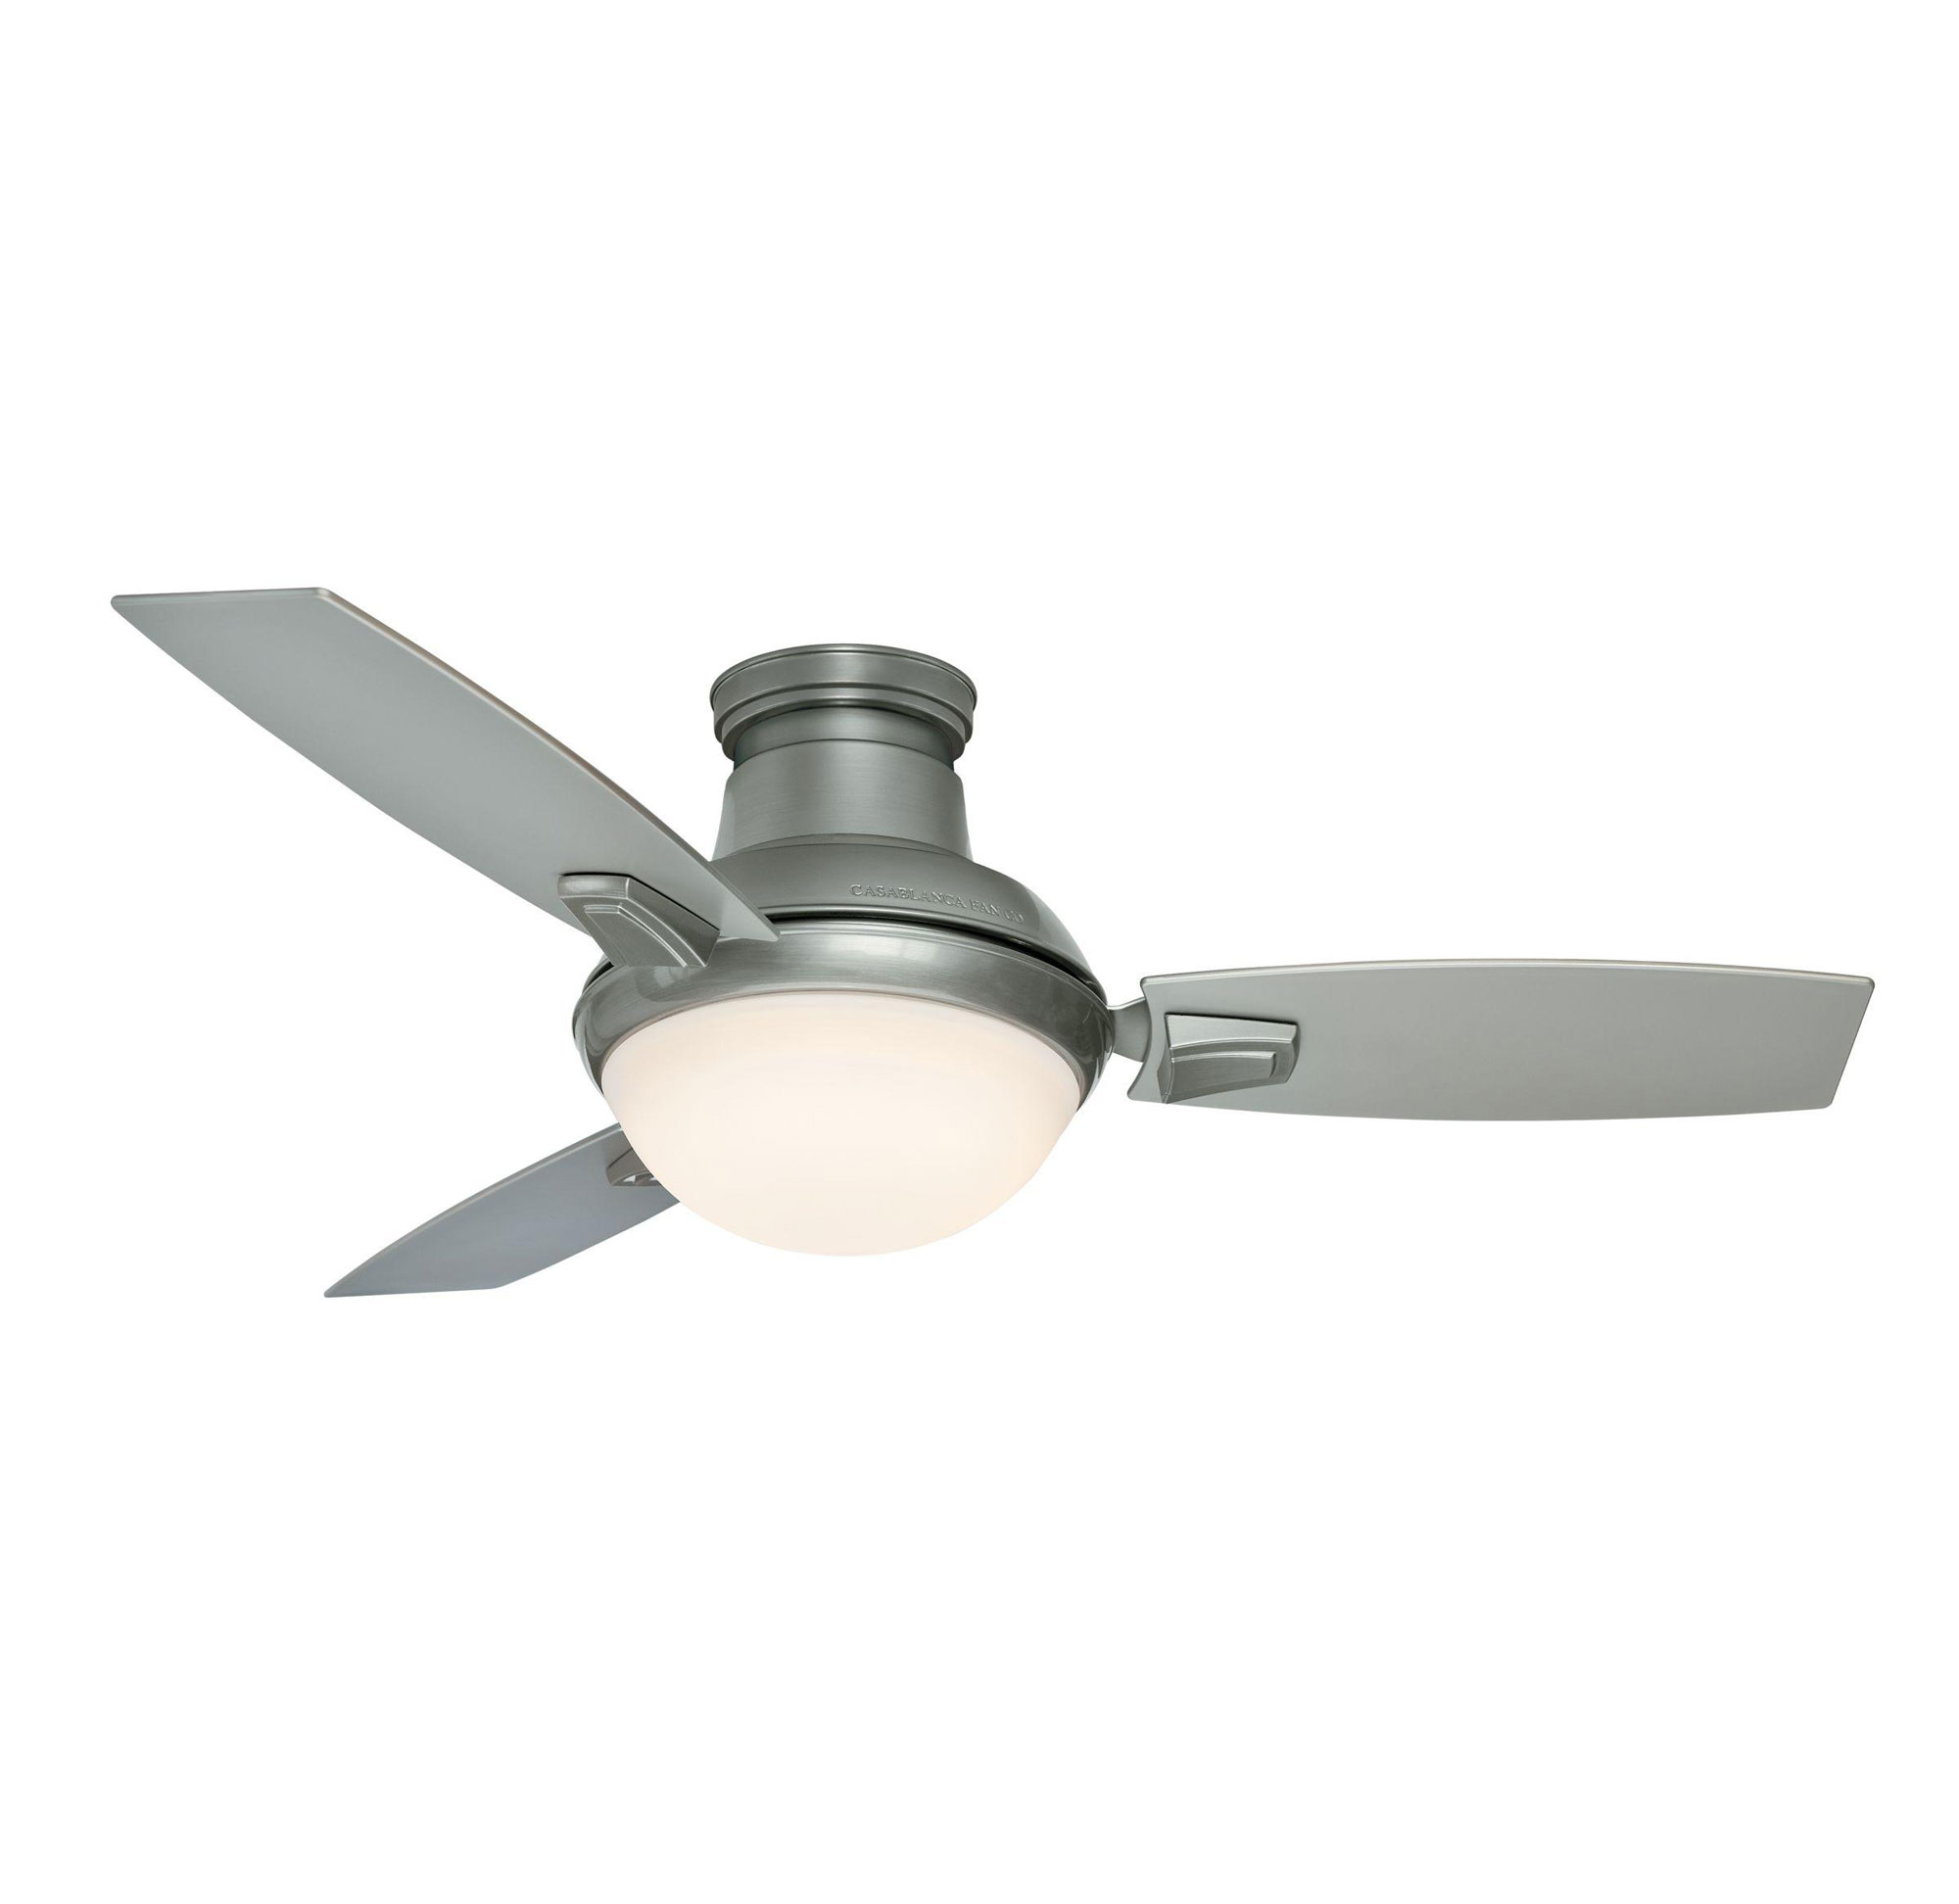 fan pixball voltage lights ceilings light with on low unique inch l no fans ceiling galery